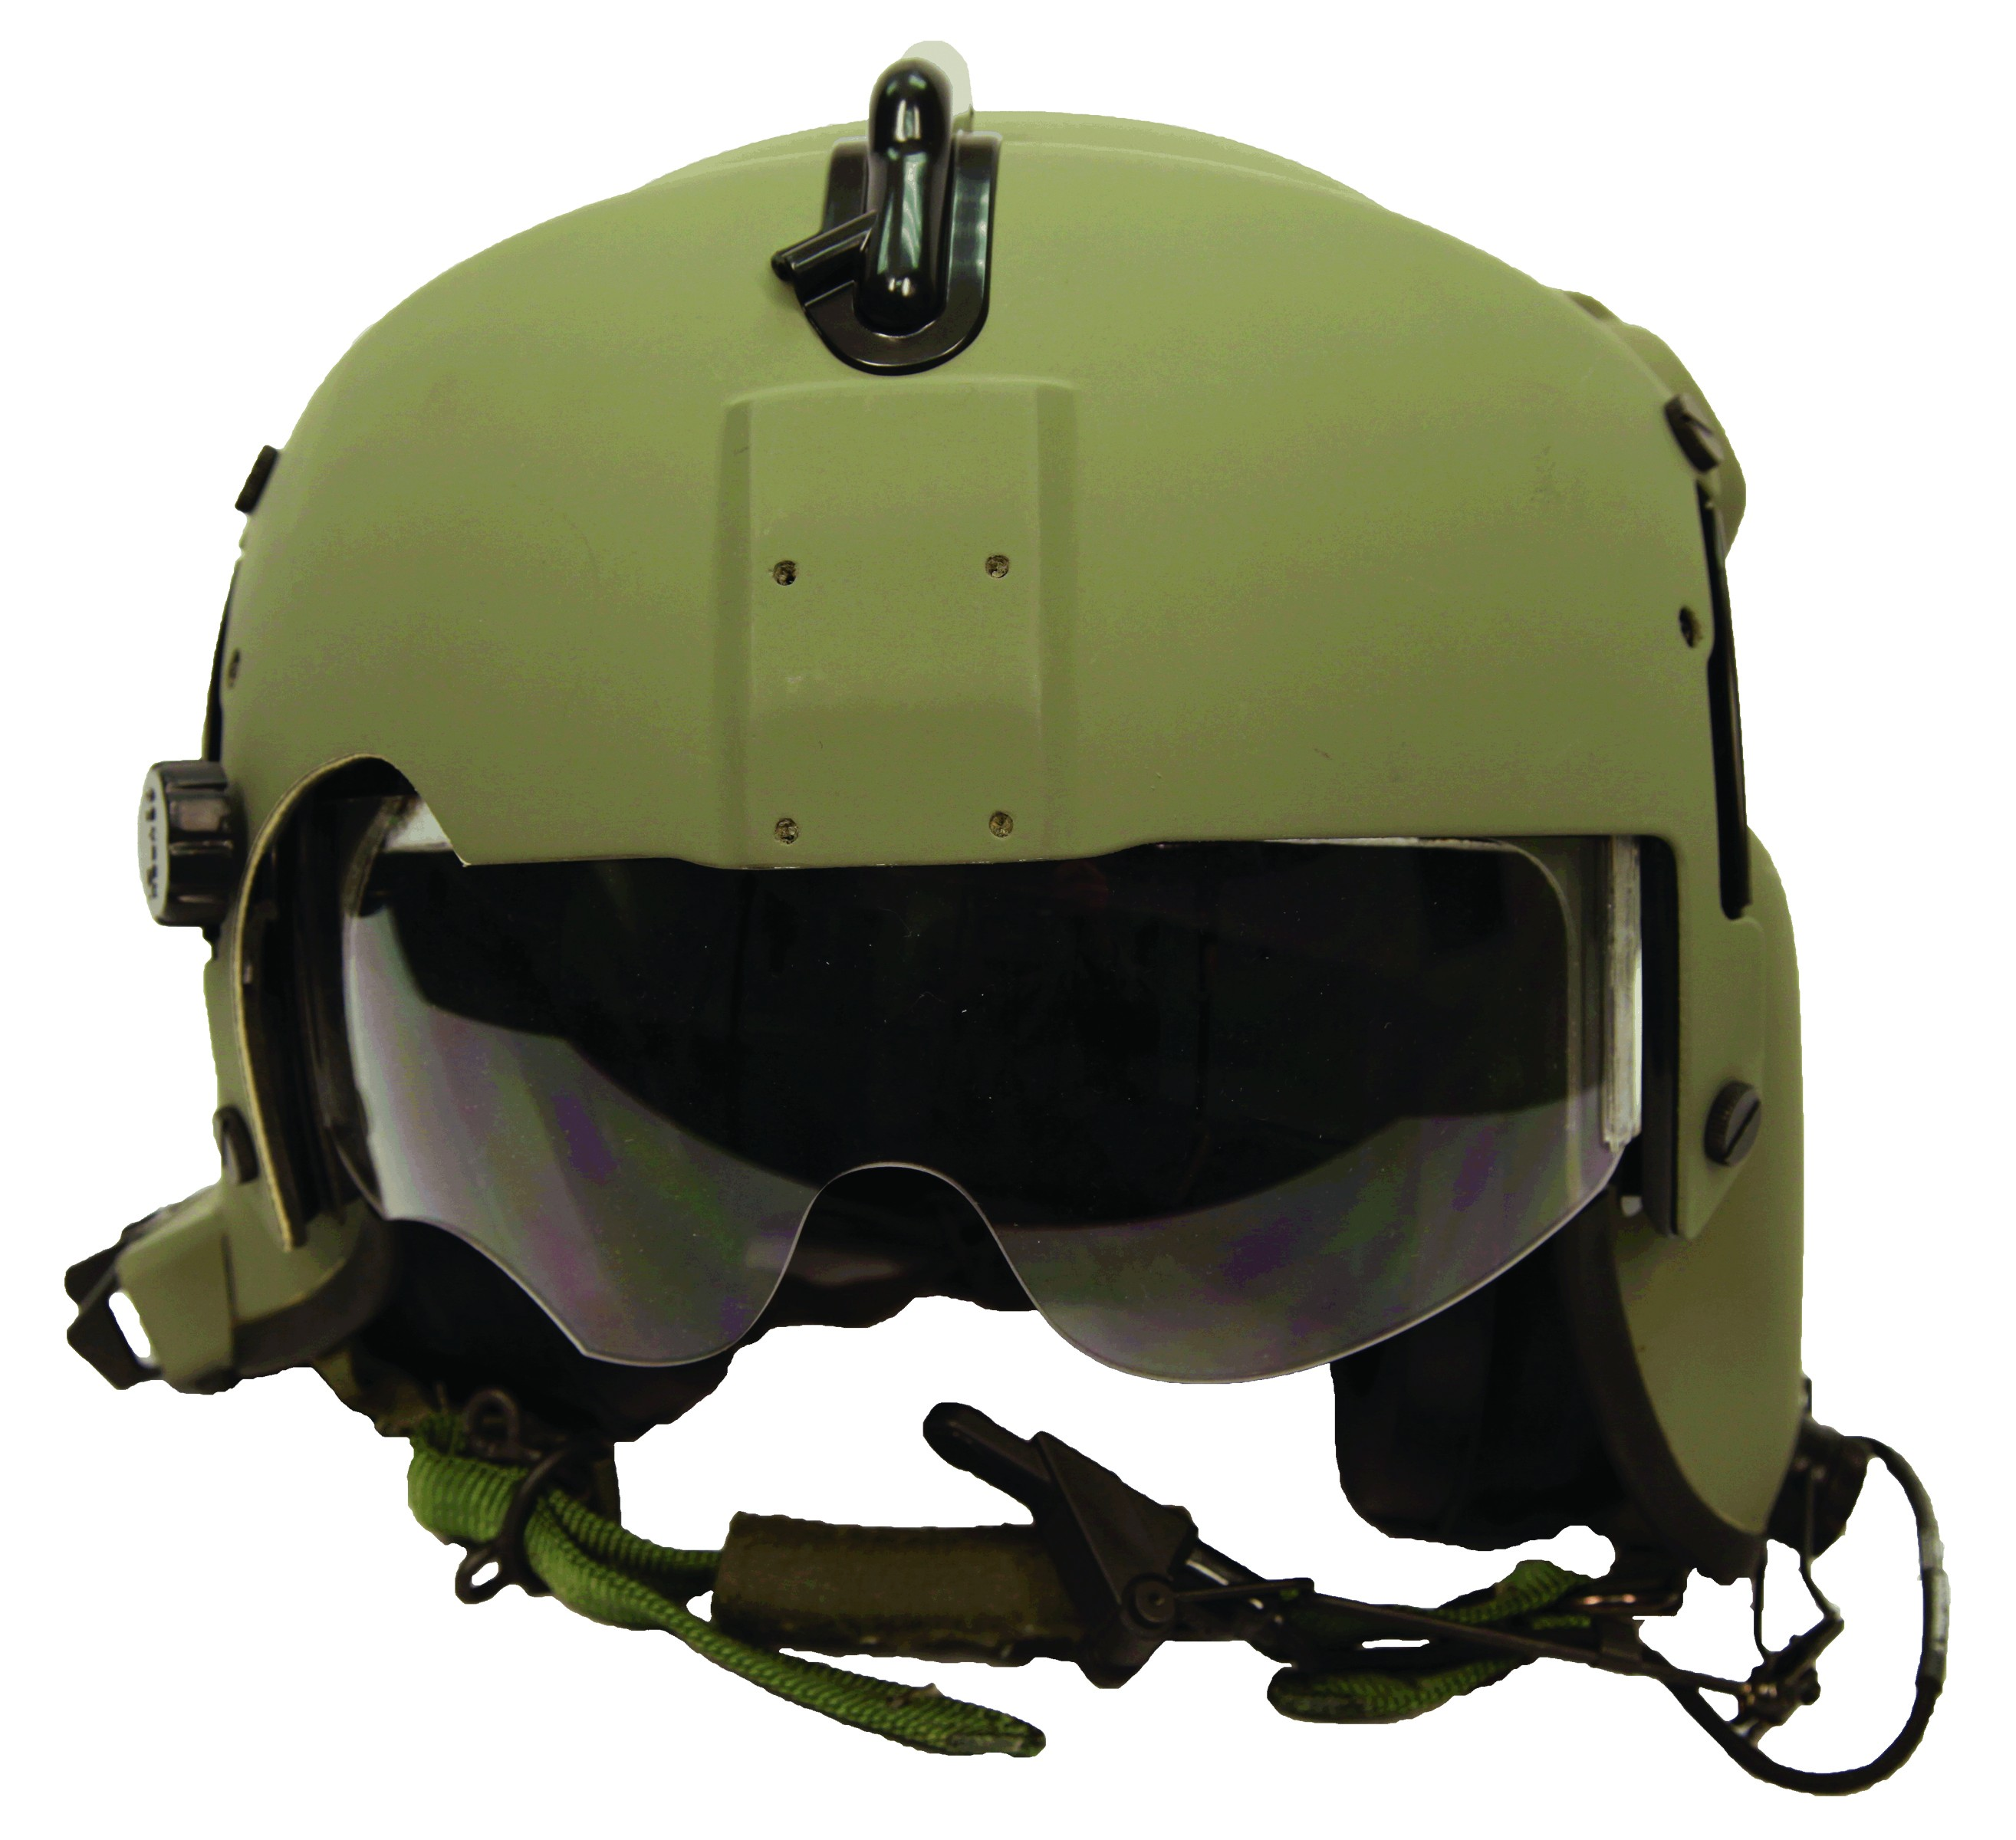 helicopter pilot helmet with File Apache Aircrew Integrated Helmet on F 35 Joint Strike Fighter Jsf Lightning as well Helmets7 furthermore 2010 10 01 archive additionally Index furthermore Stock Illustration Military Flight Fighter Pilot Helmet Vector Blue Air Force Oxygen Mask Illustration Isolated White Background Image62733667.